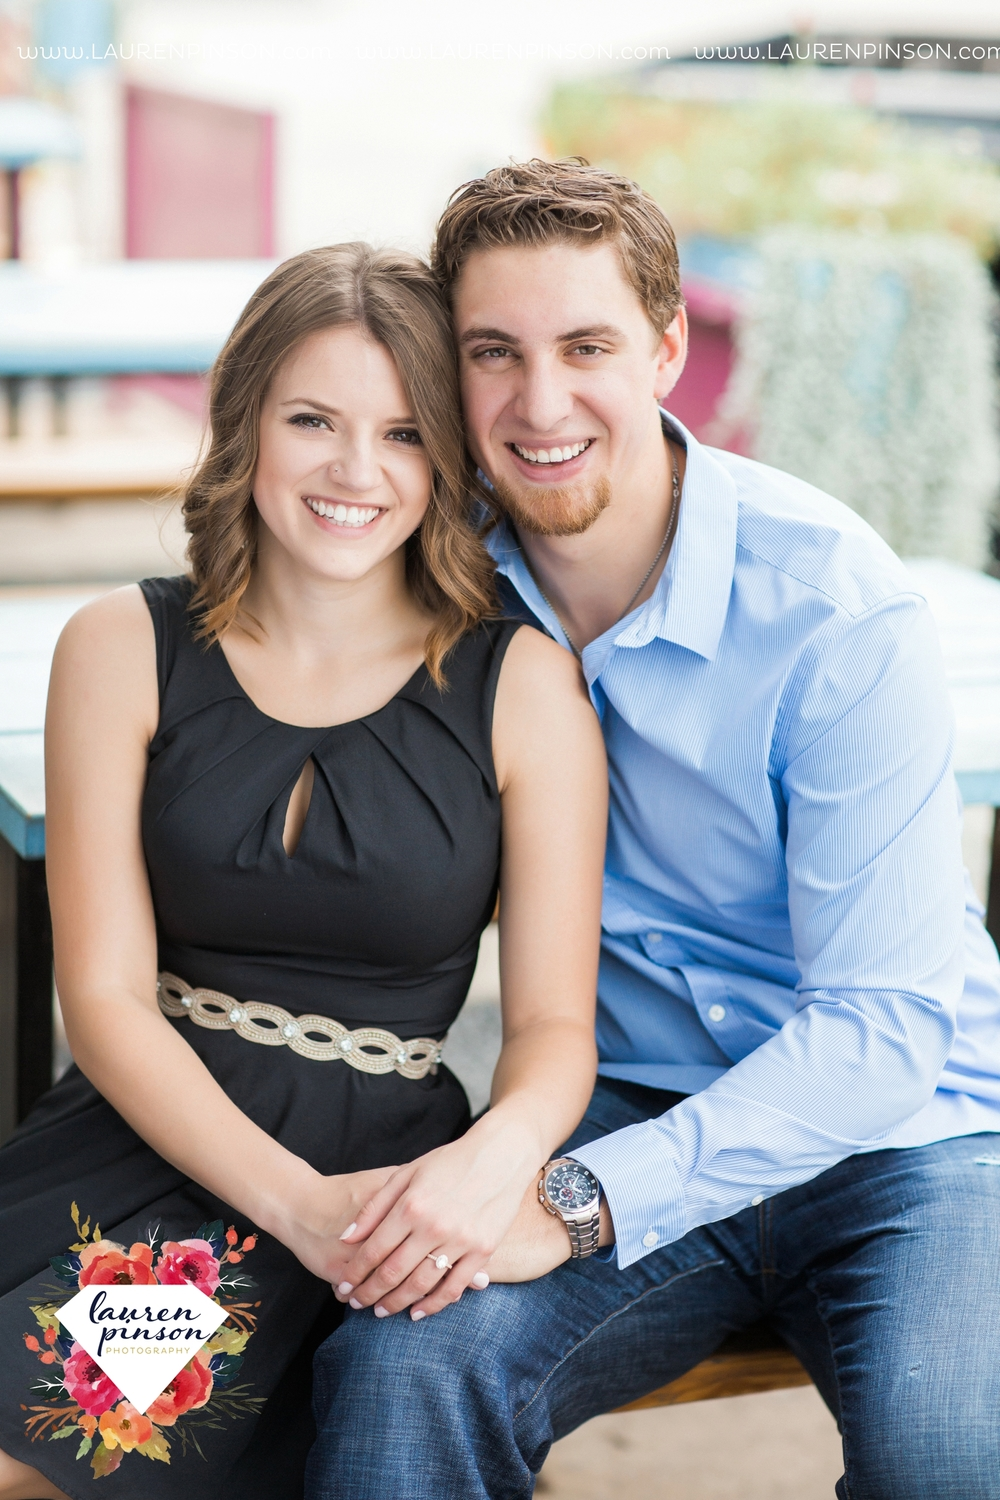 austin-texas-engagement-session-photography-by-wichita-falls-wedding-photgraphy-lauren-pinson_1395.jpg